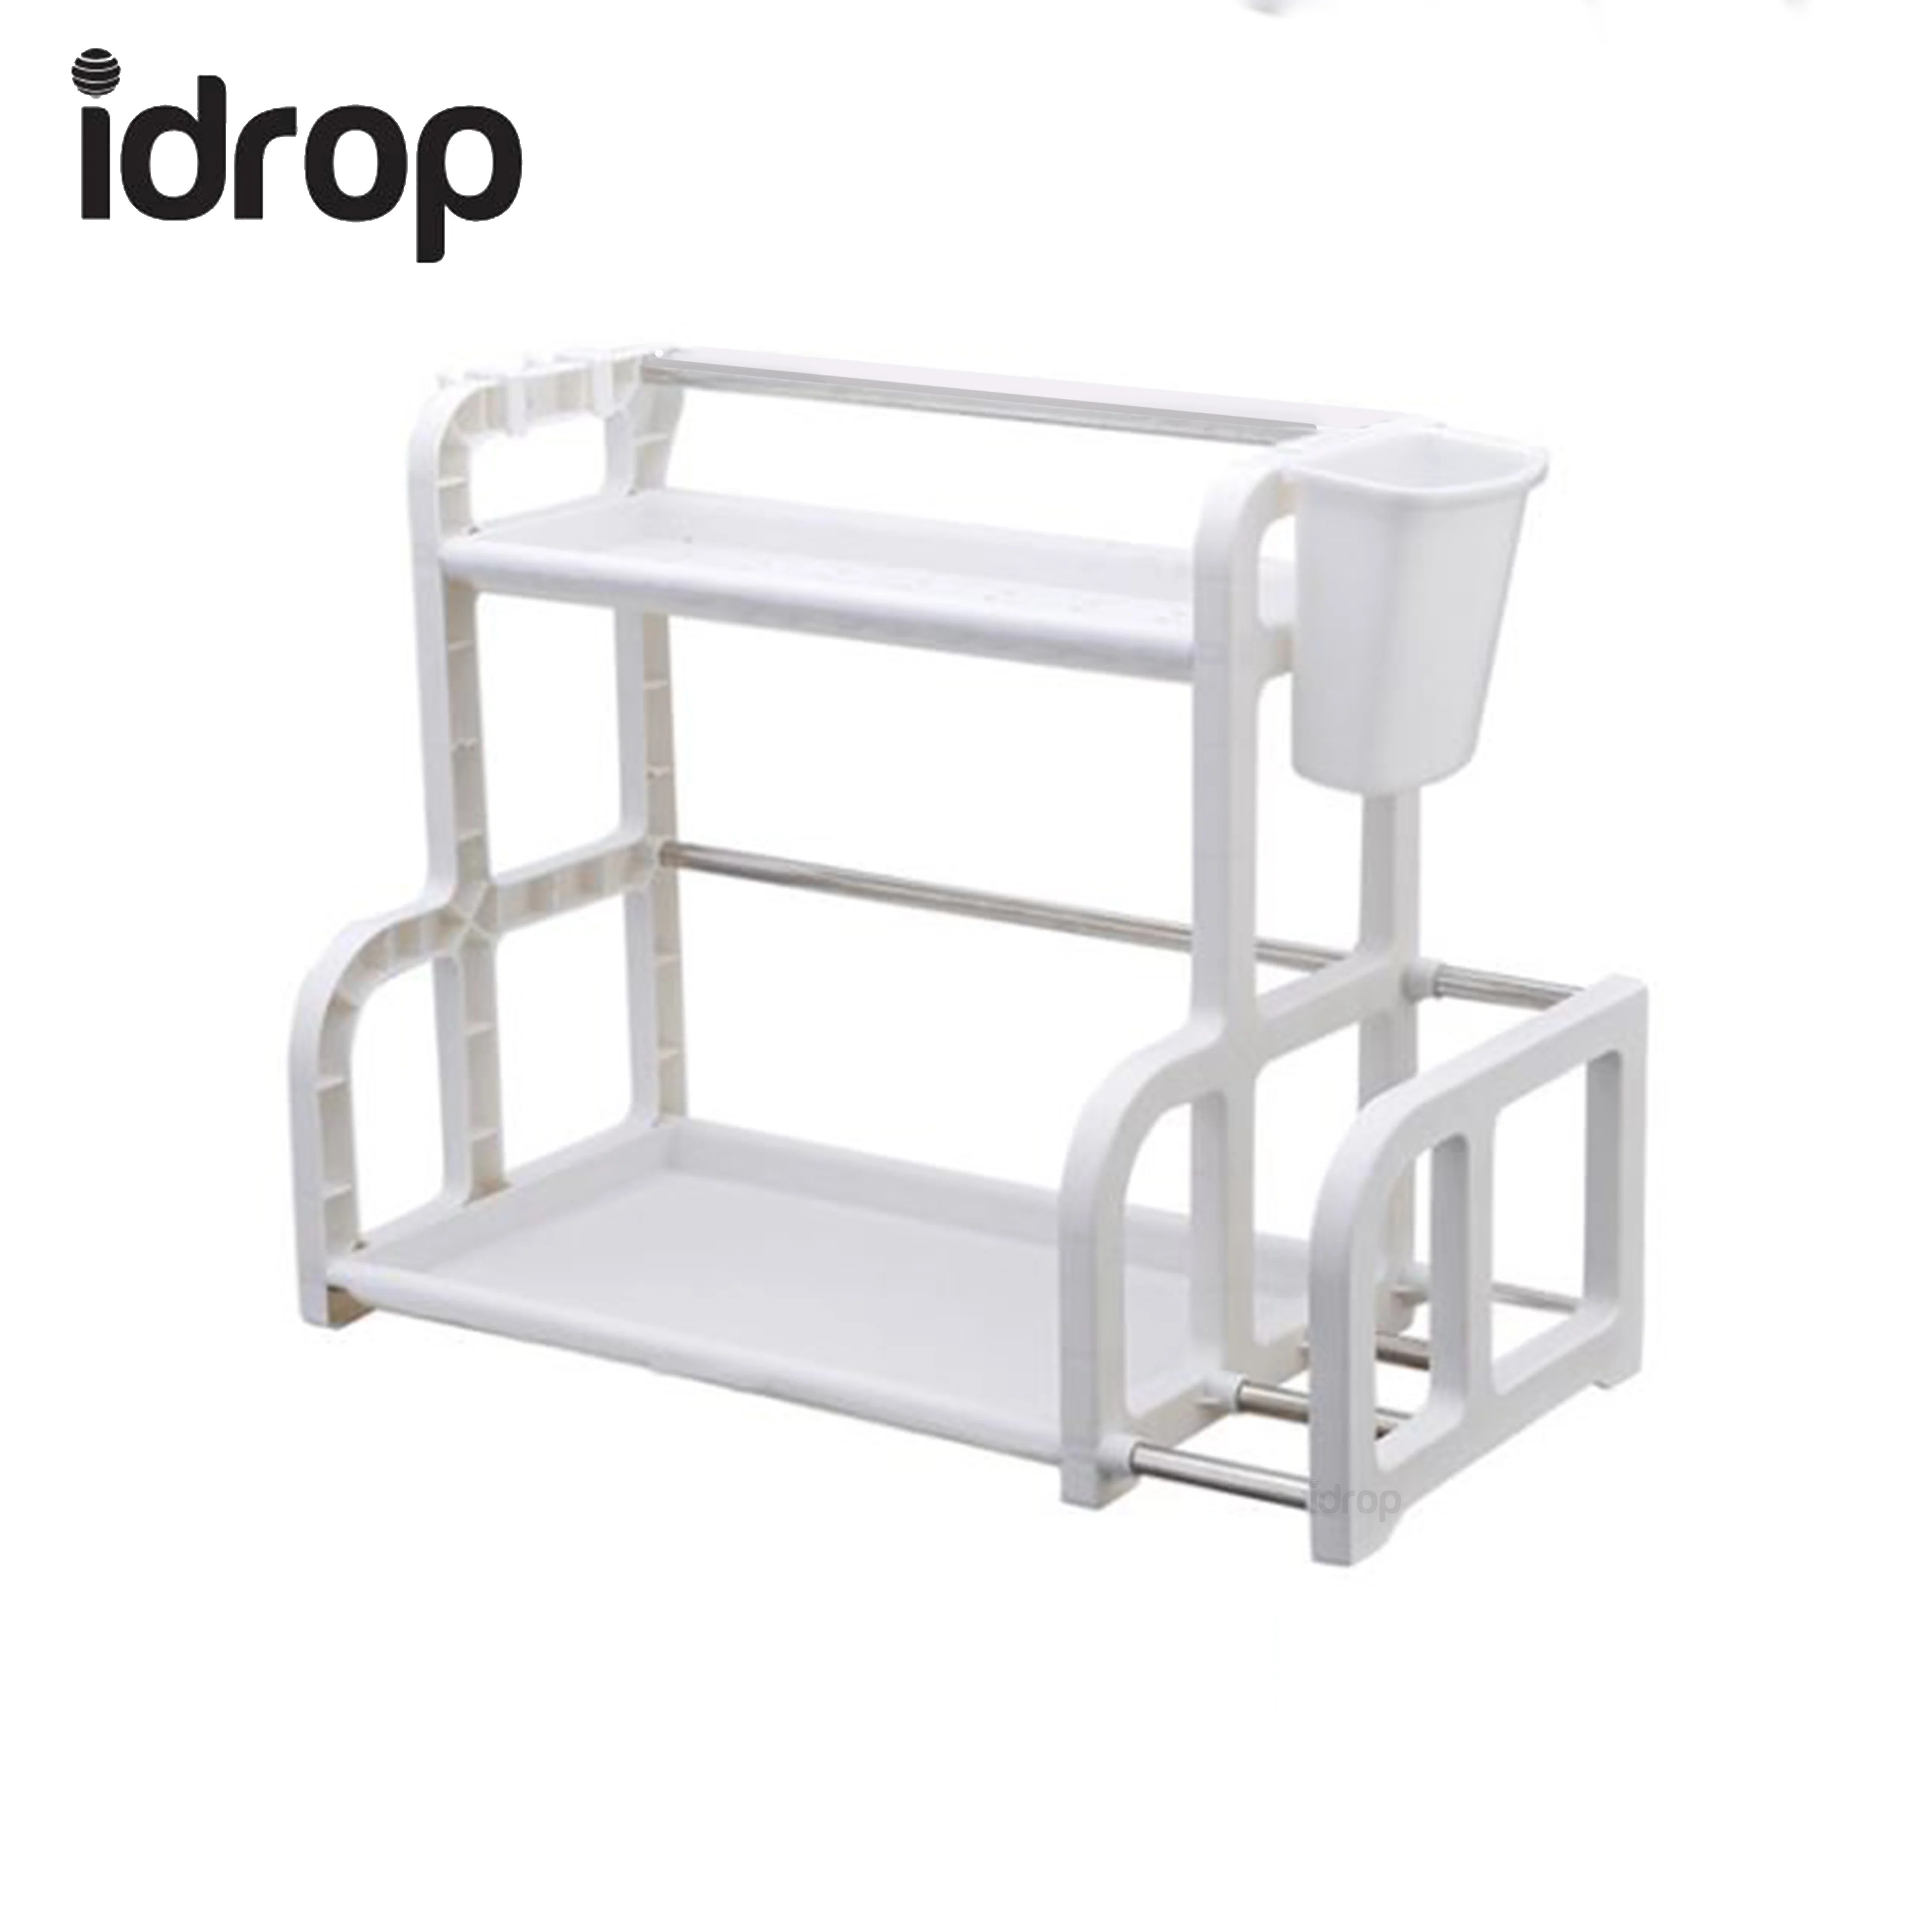 idrop kitchen organiser shelf